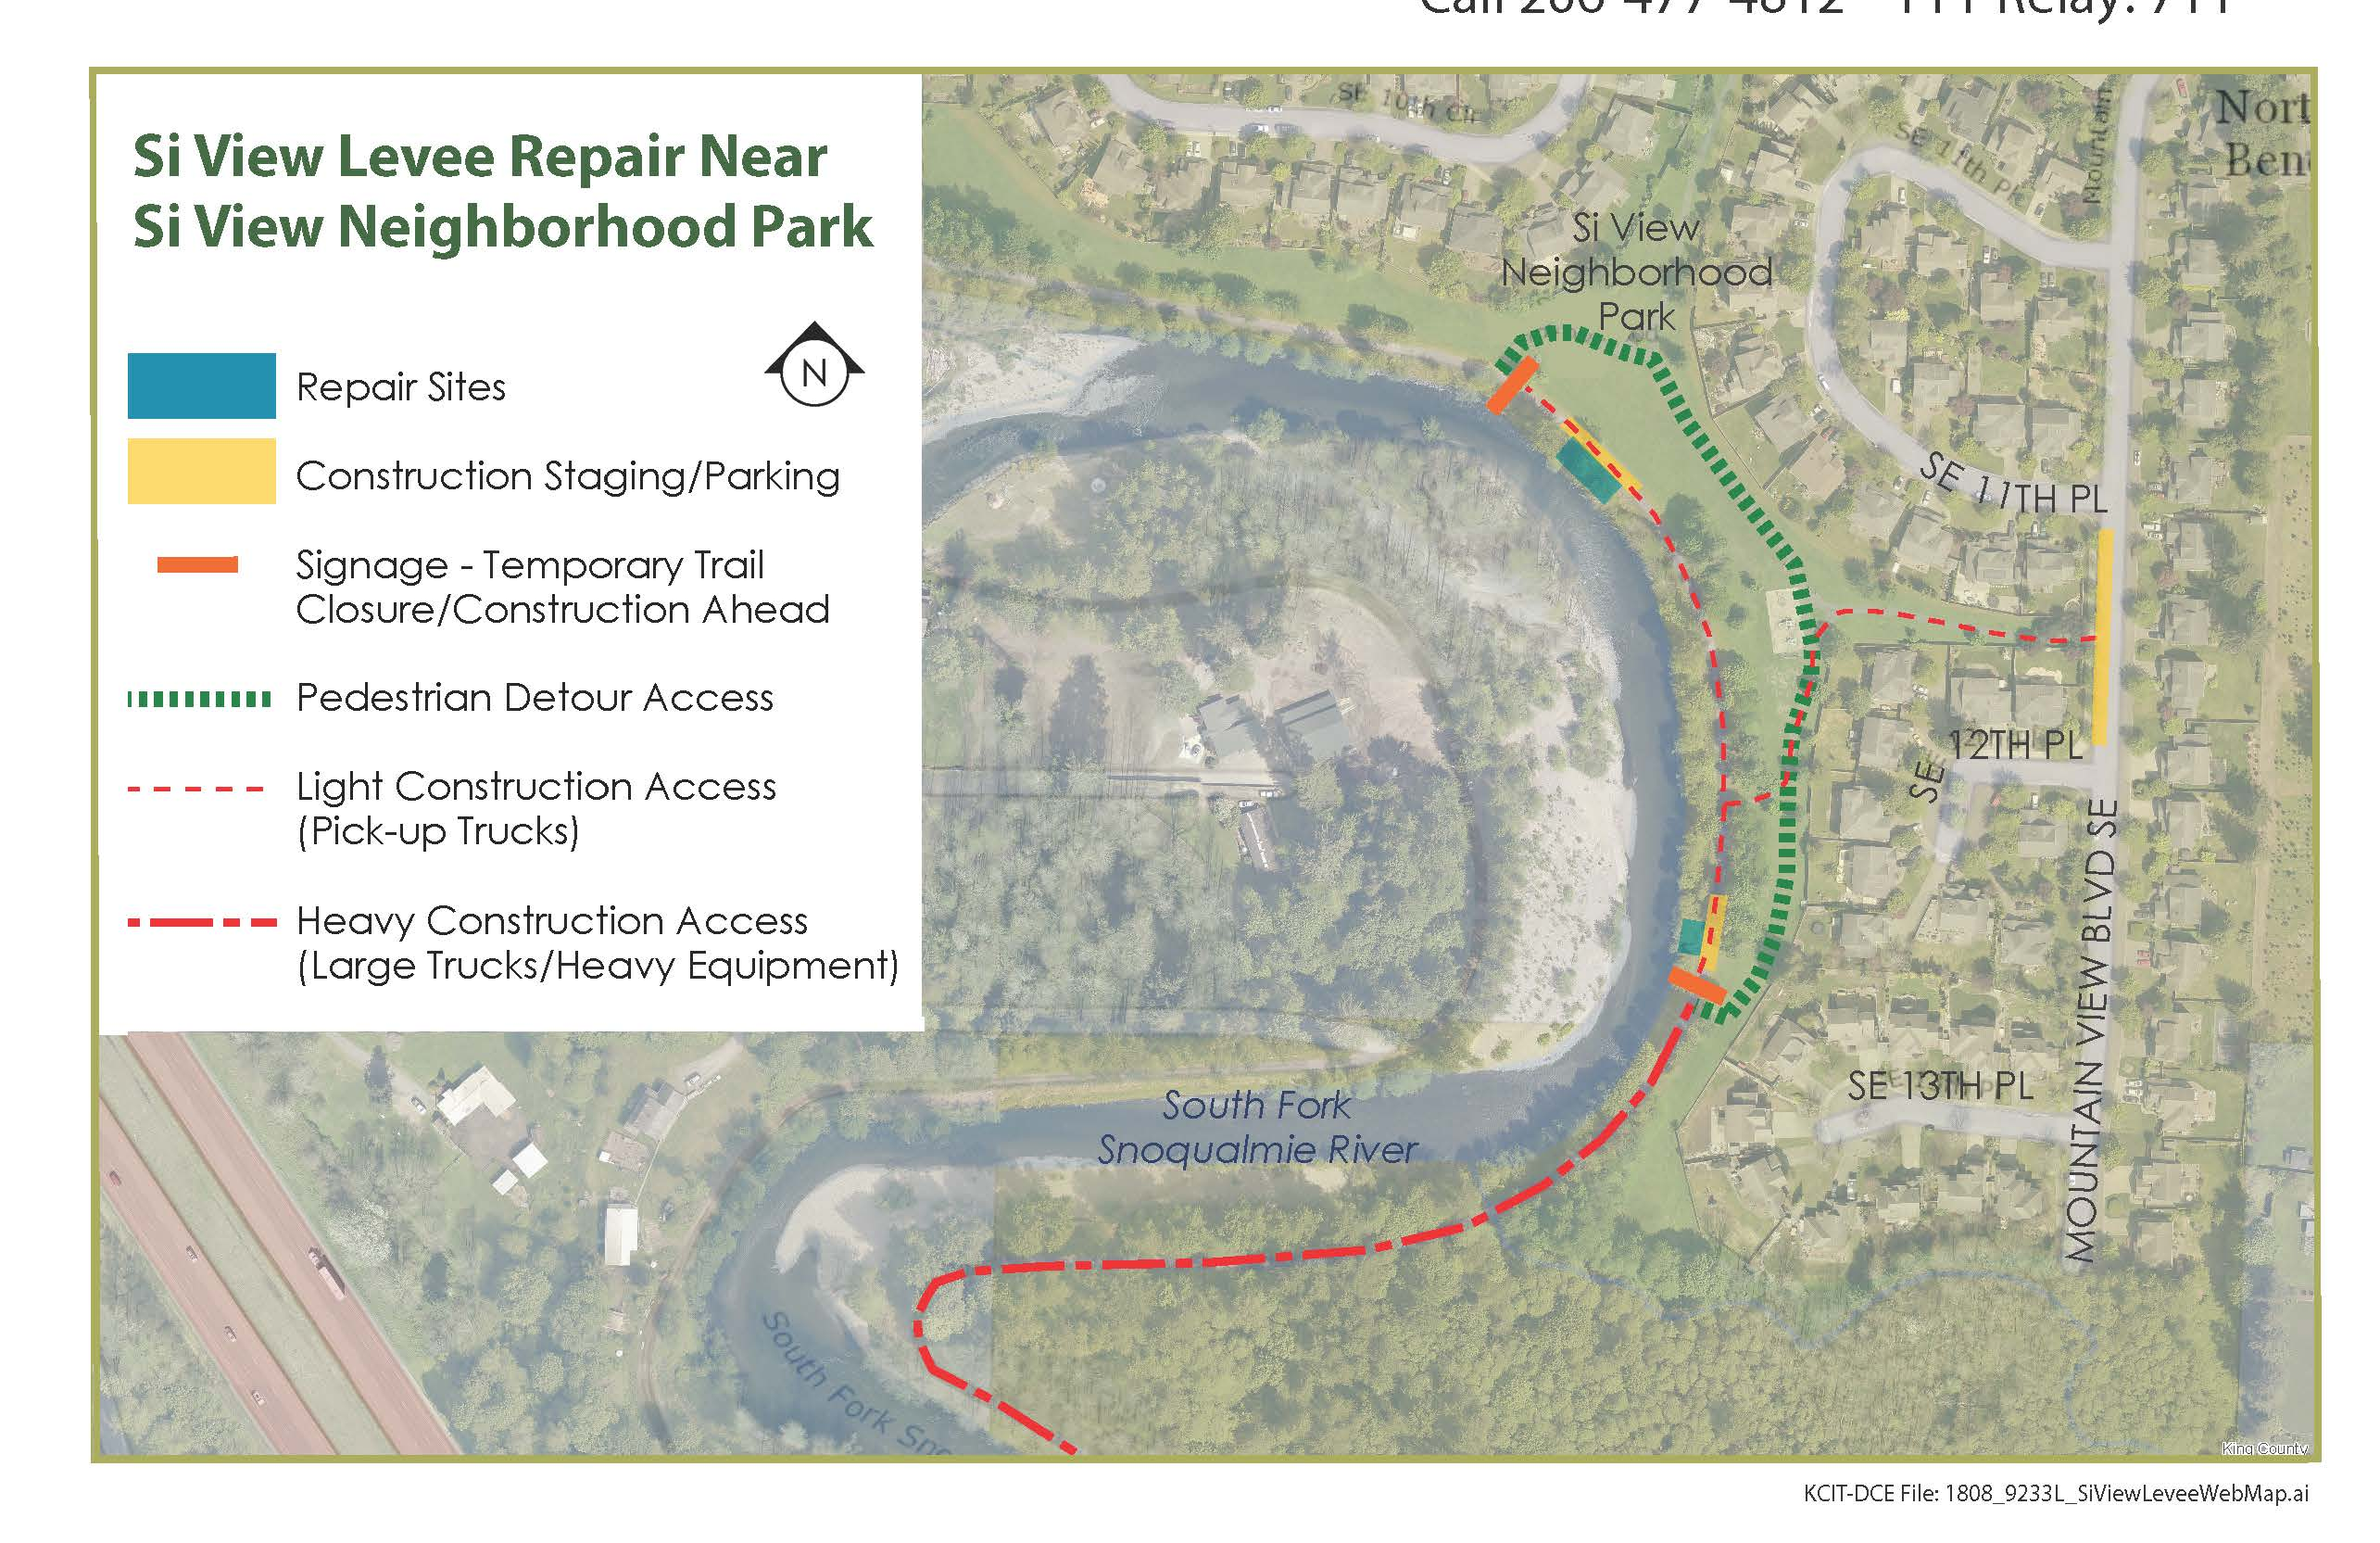 Si View Levee Repair Map